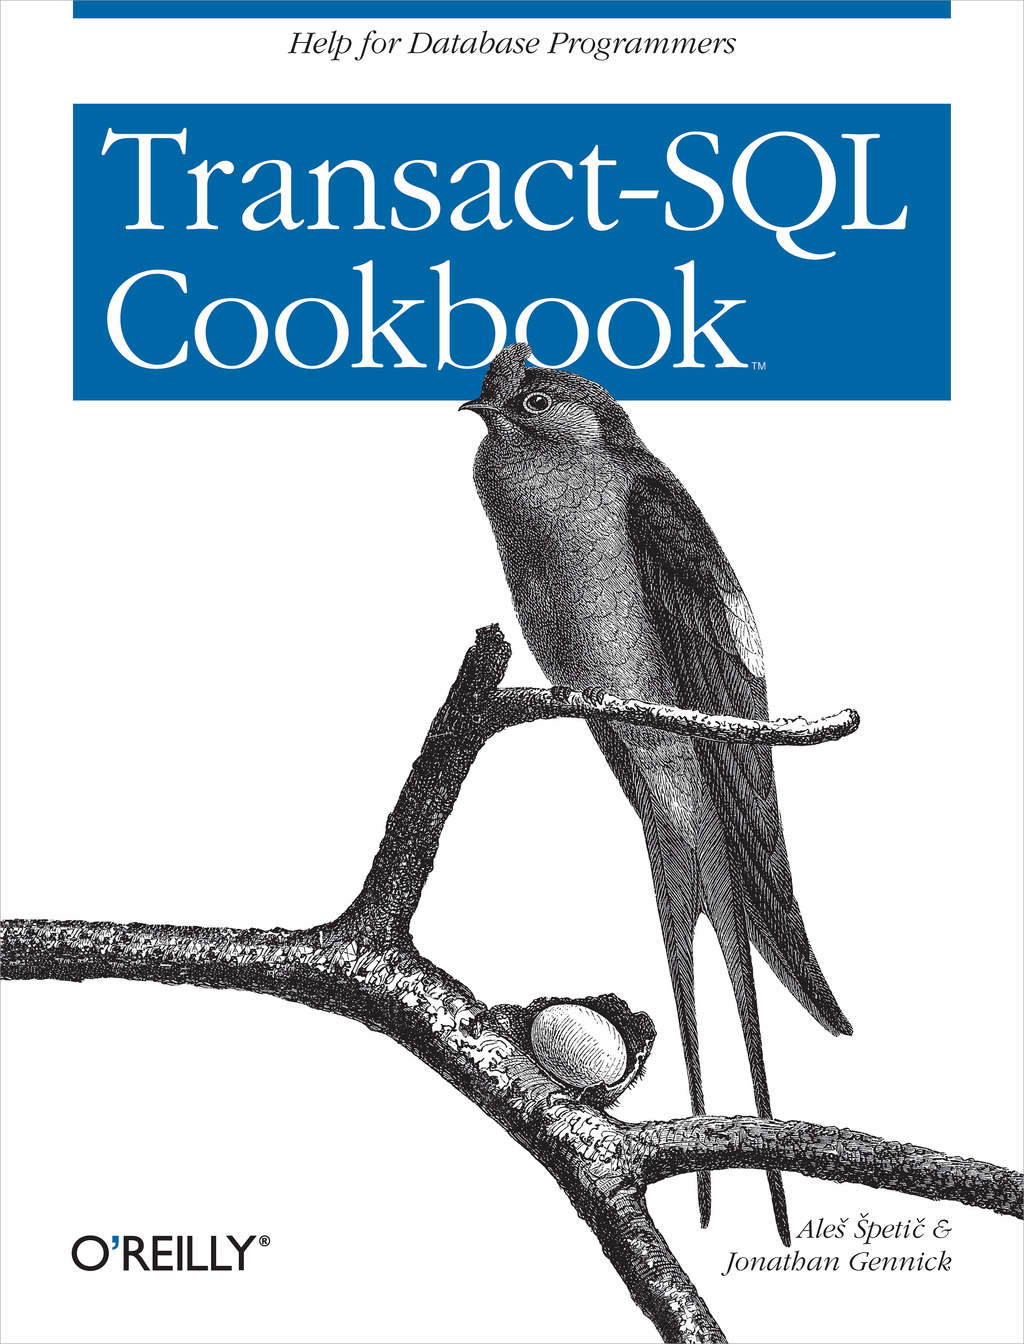 Transact-SQL Cookbook